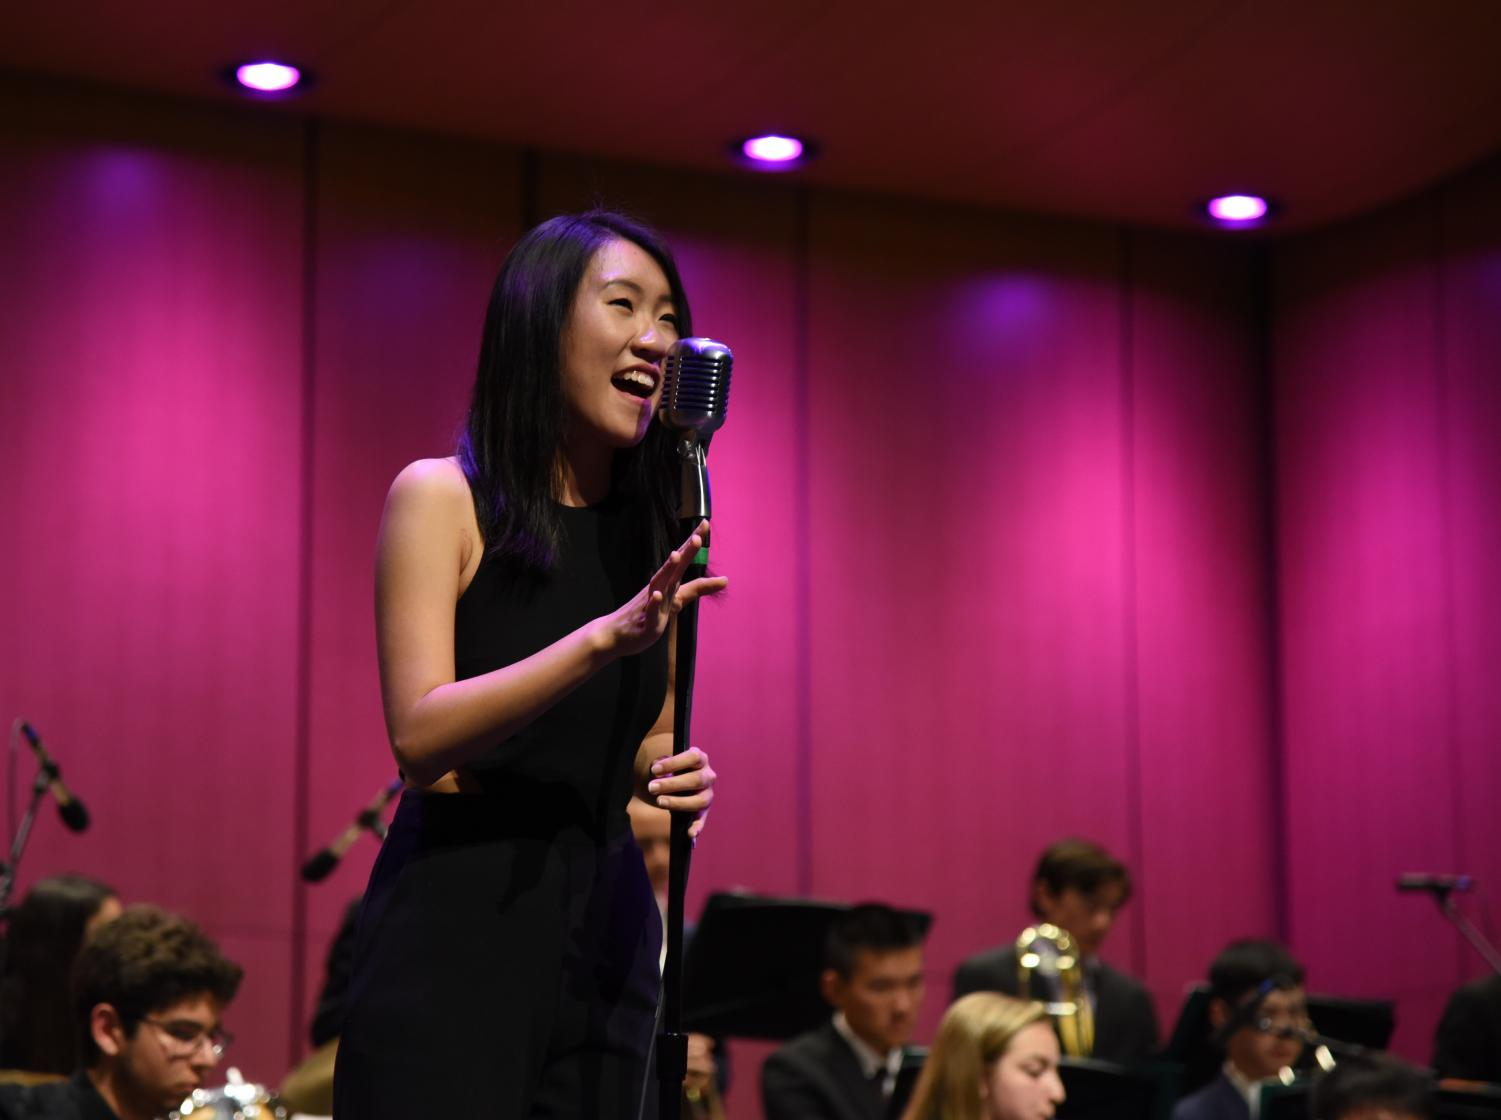 Kelsey Wu (12) sings with accompaniment from the upper school's Jazz Band. Kelsey was among the seniors honored at the end of her performance.